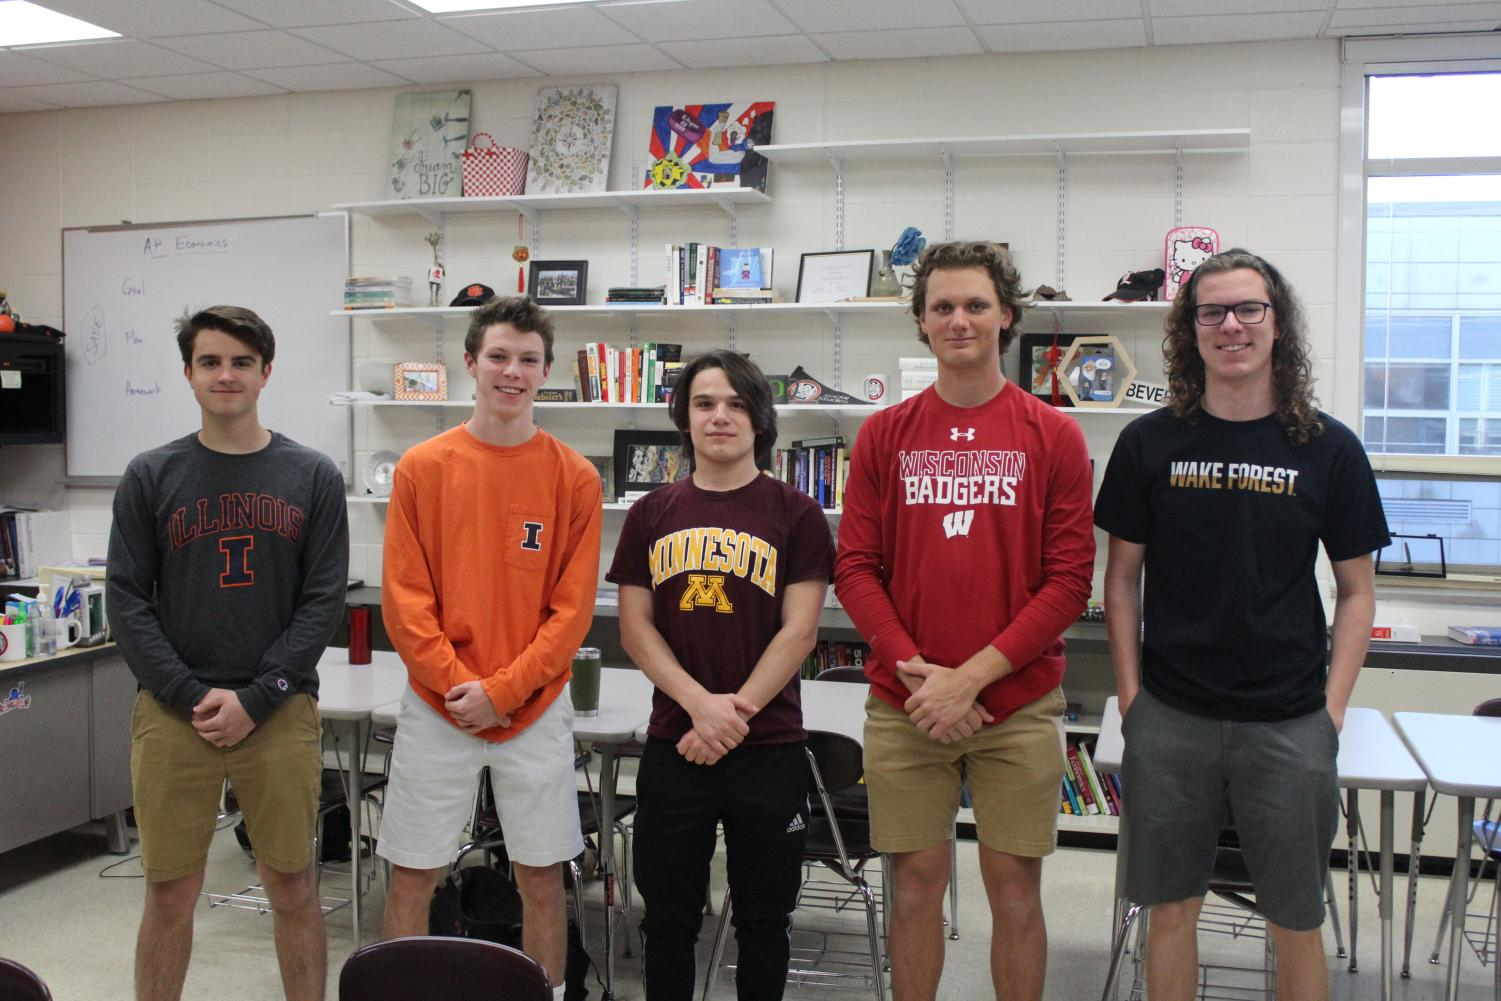 Parker+Schleuning+and+Max+Sauers+are+attending+the+University+of+Illinois%2C+Ian+Smith+is+going+to+the+University+of+Minnesota%2C+Jack+Turco+is+enrolling+at+the+University+of+Wisconsin+and+Tate+Constable+is+joining+Wake+Forest+University.+%0A